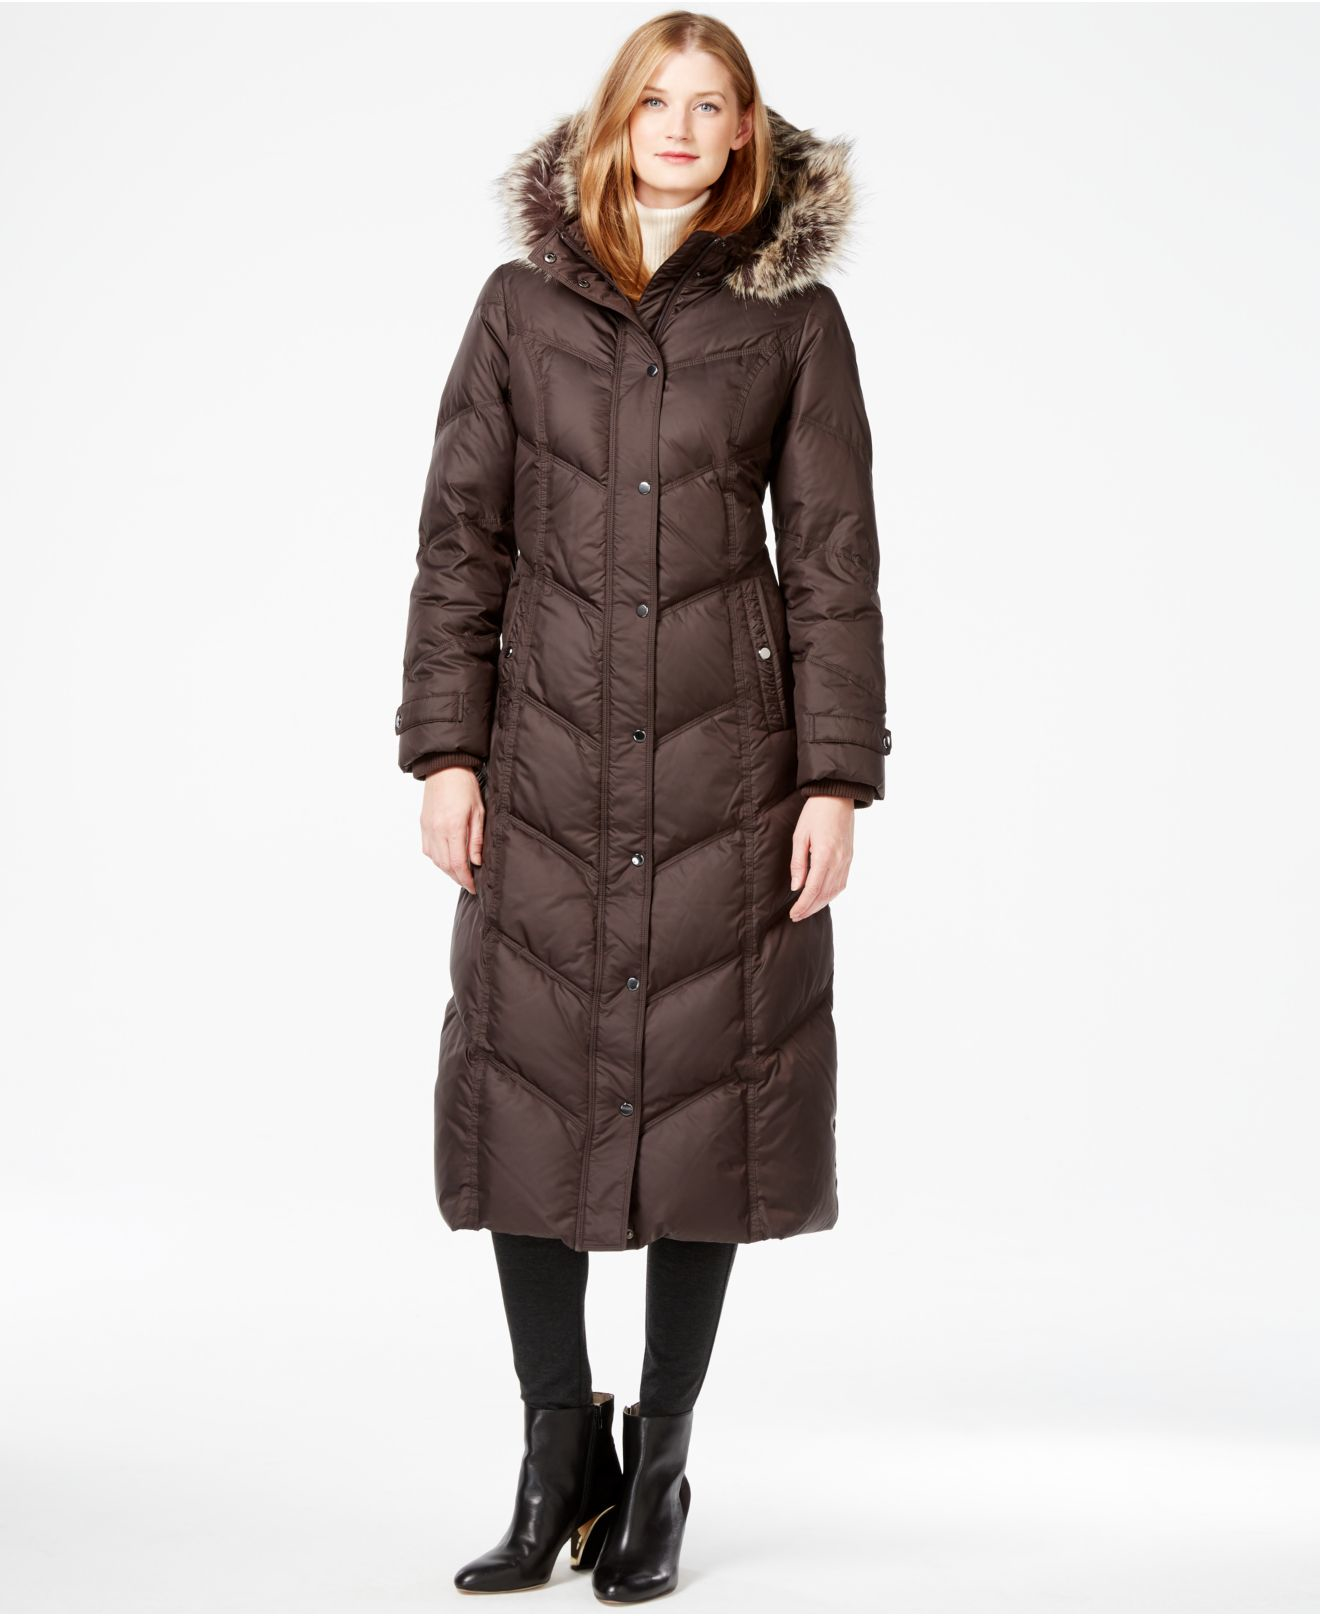 London fog Petite Faux-fur-trim Down Maxi Coat in Brown | Lyst